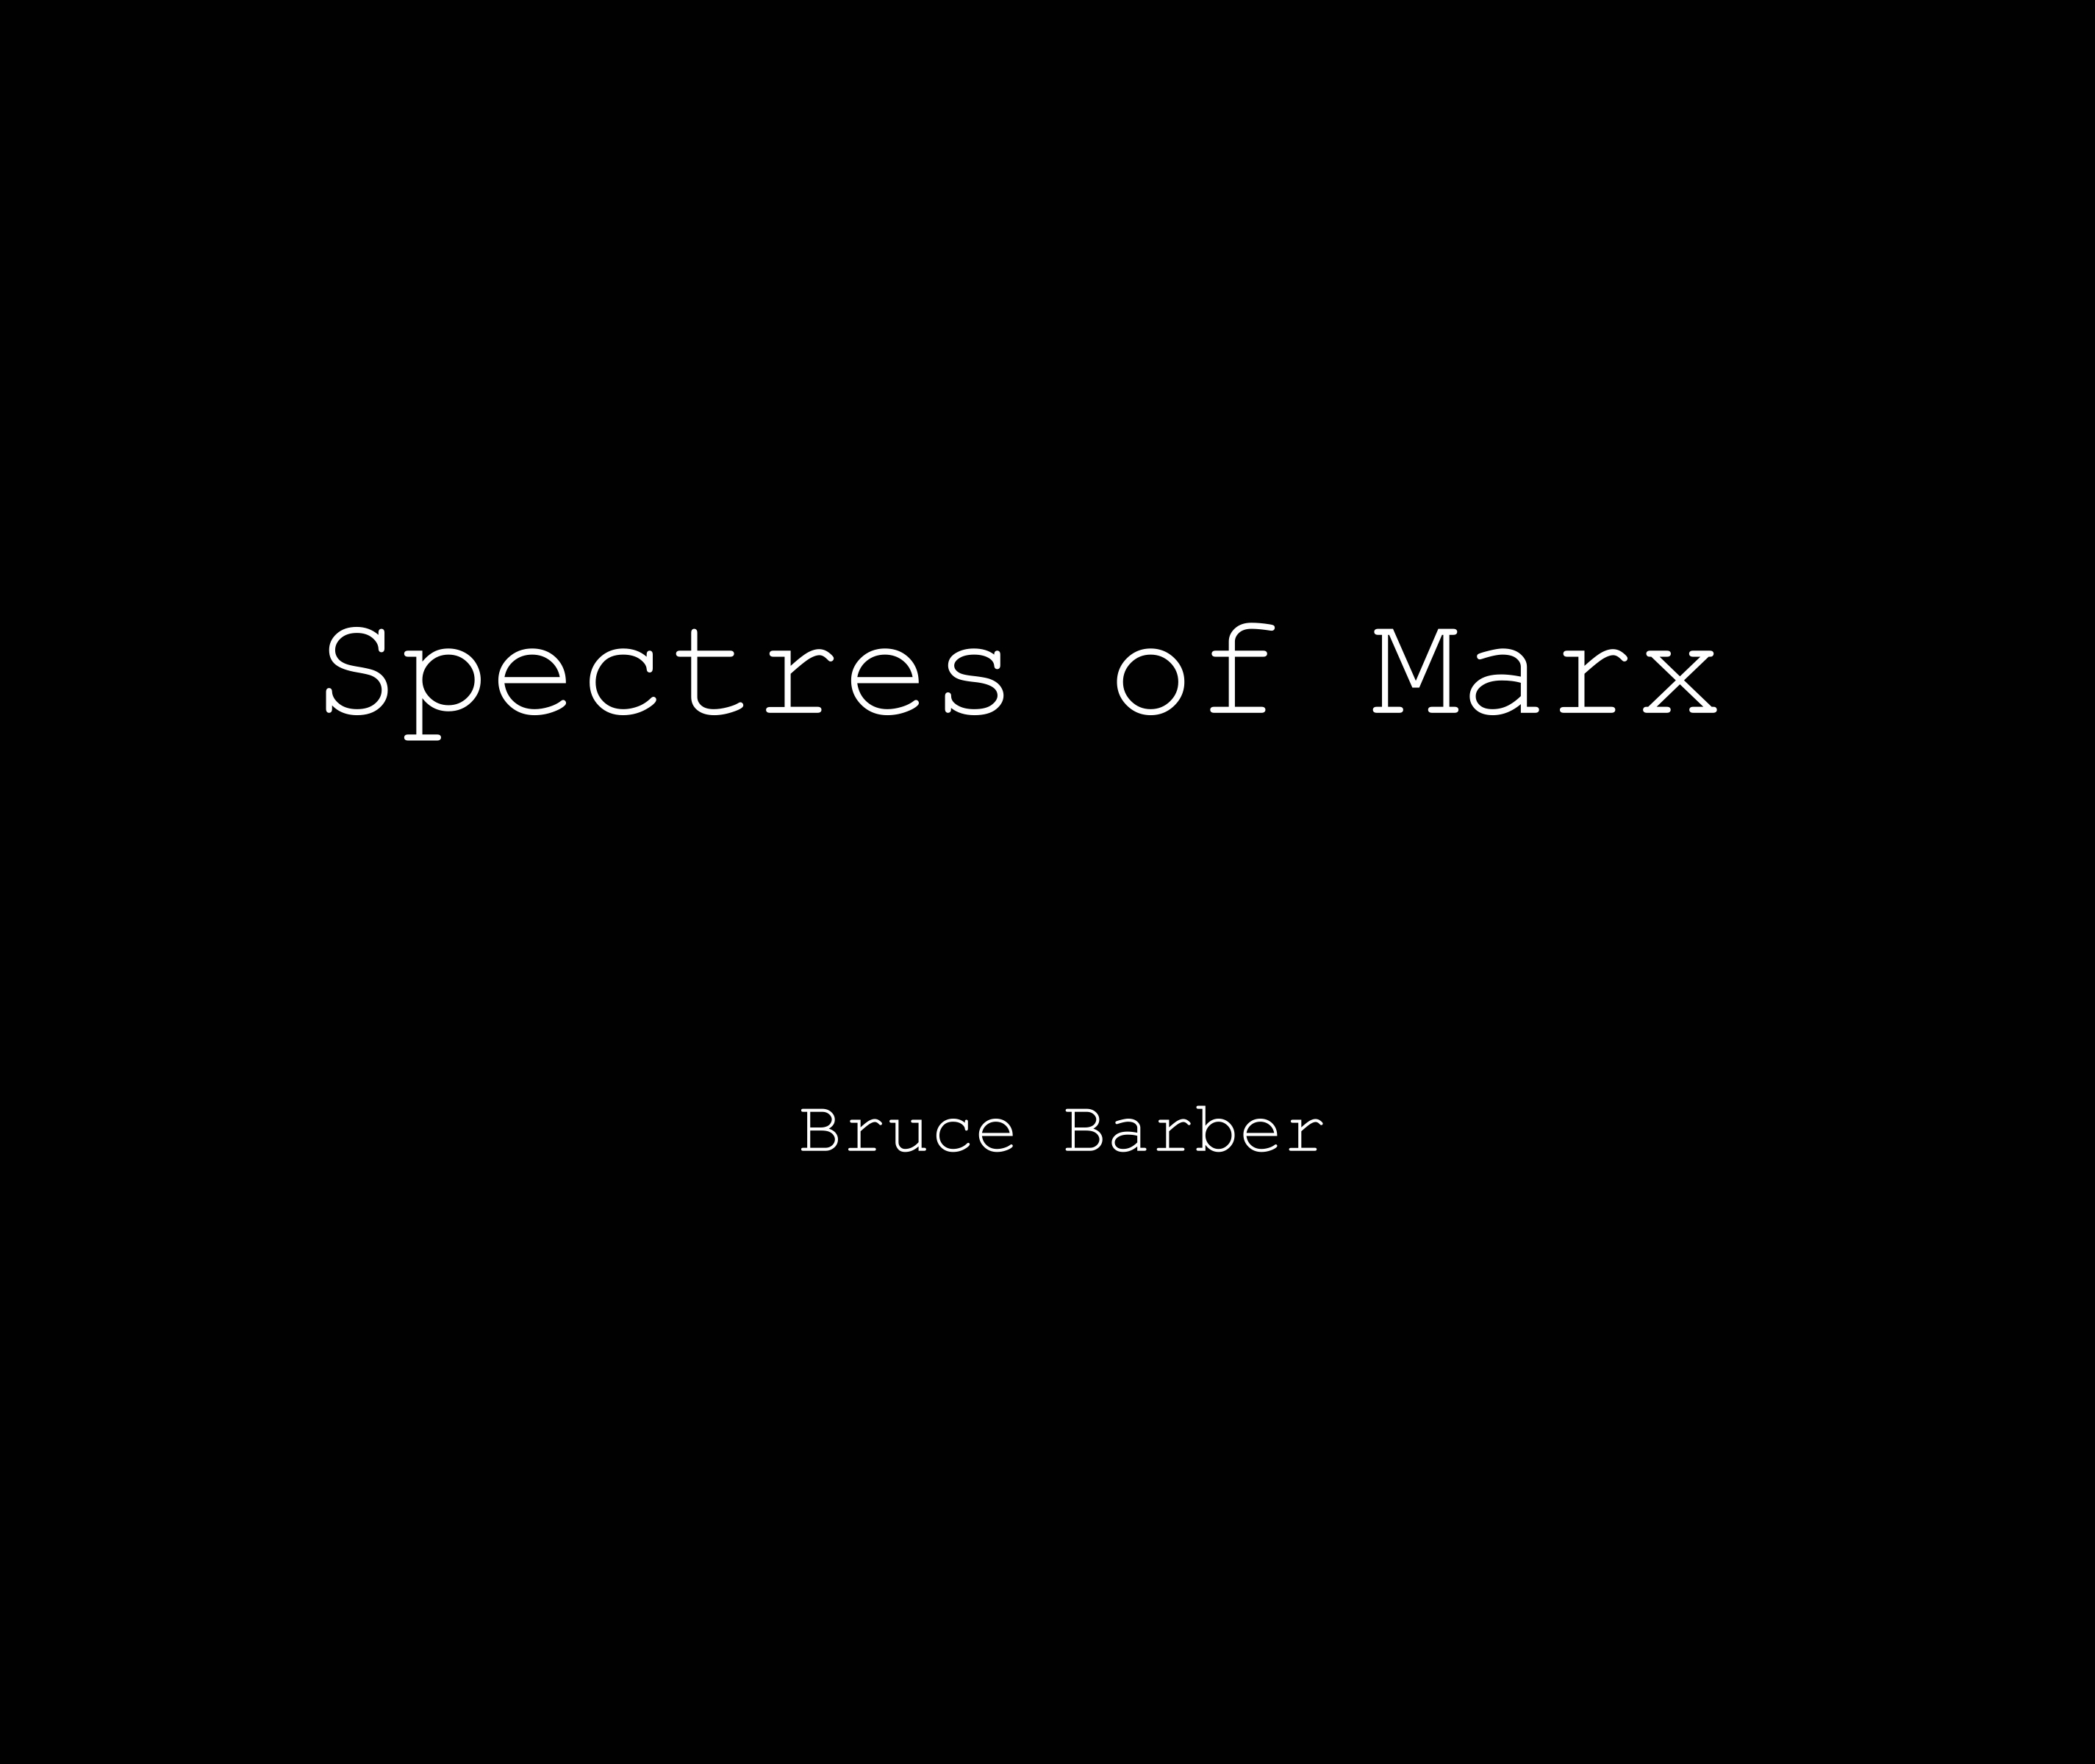 essay for bruce barber s spectres of marx blog of public secrets essay for bruce barber s spectres of marx